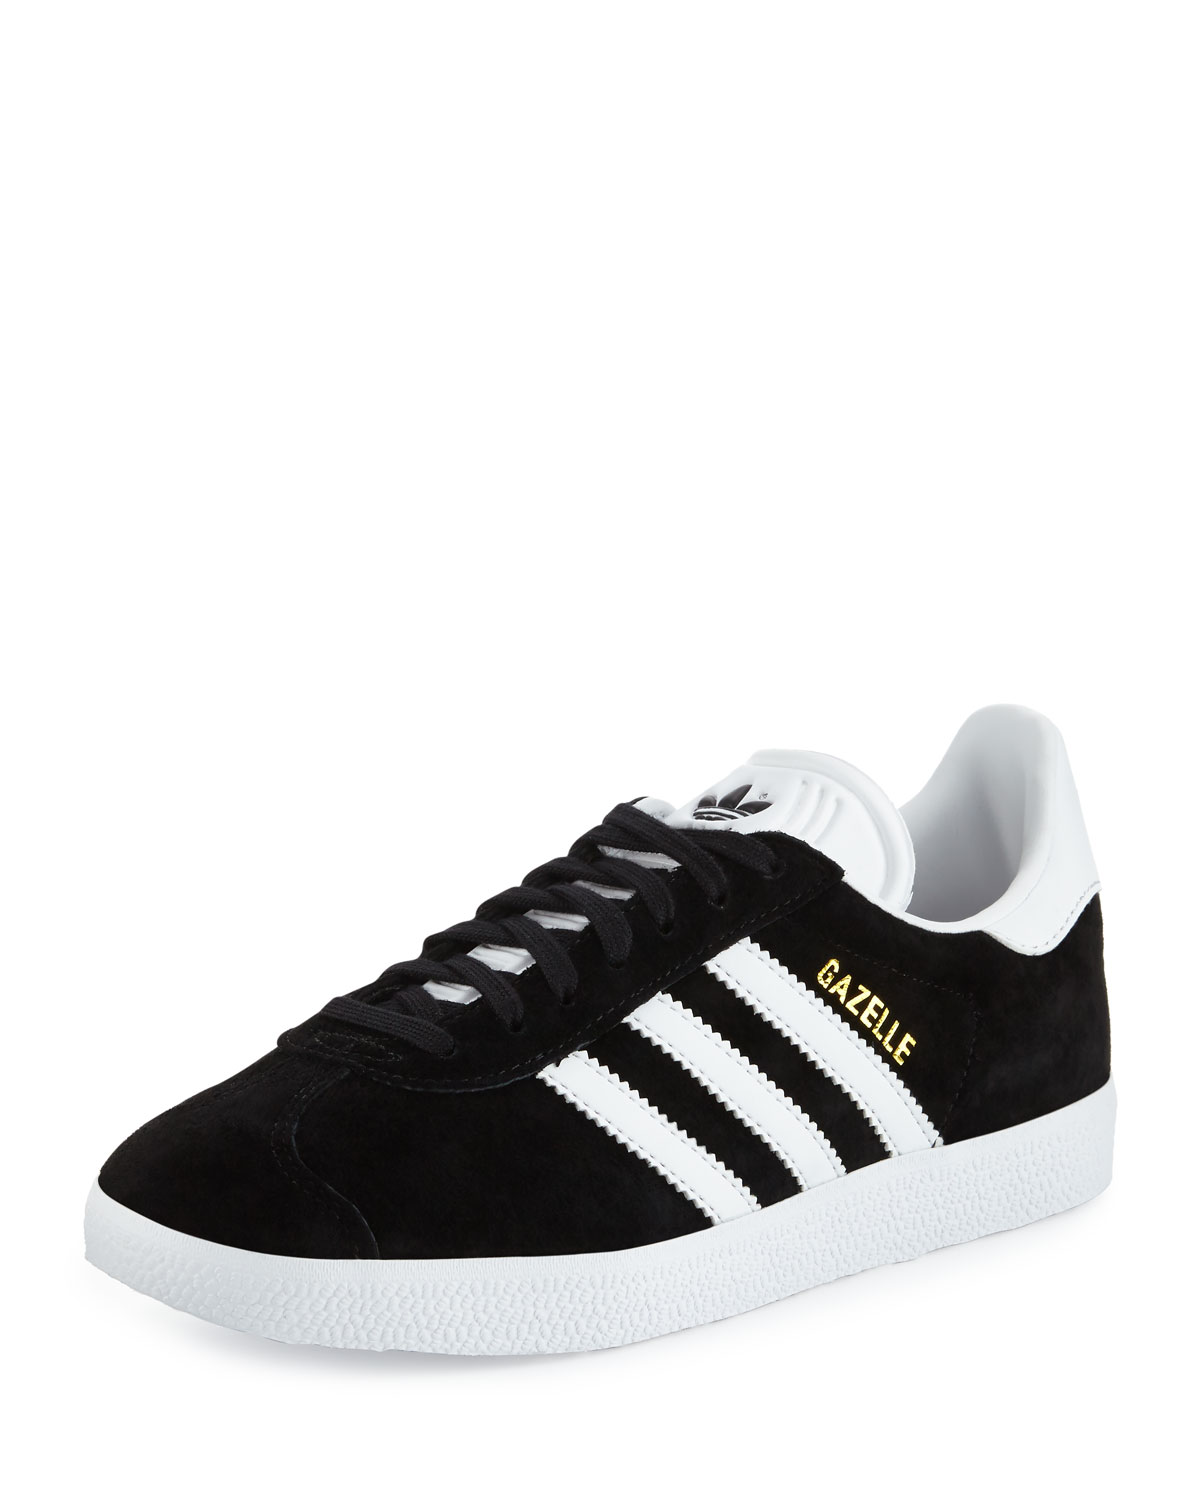 d918c9ec9915a Gazelle Original Suede Sneakers, Black/White